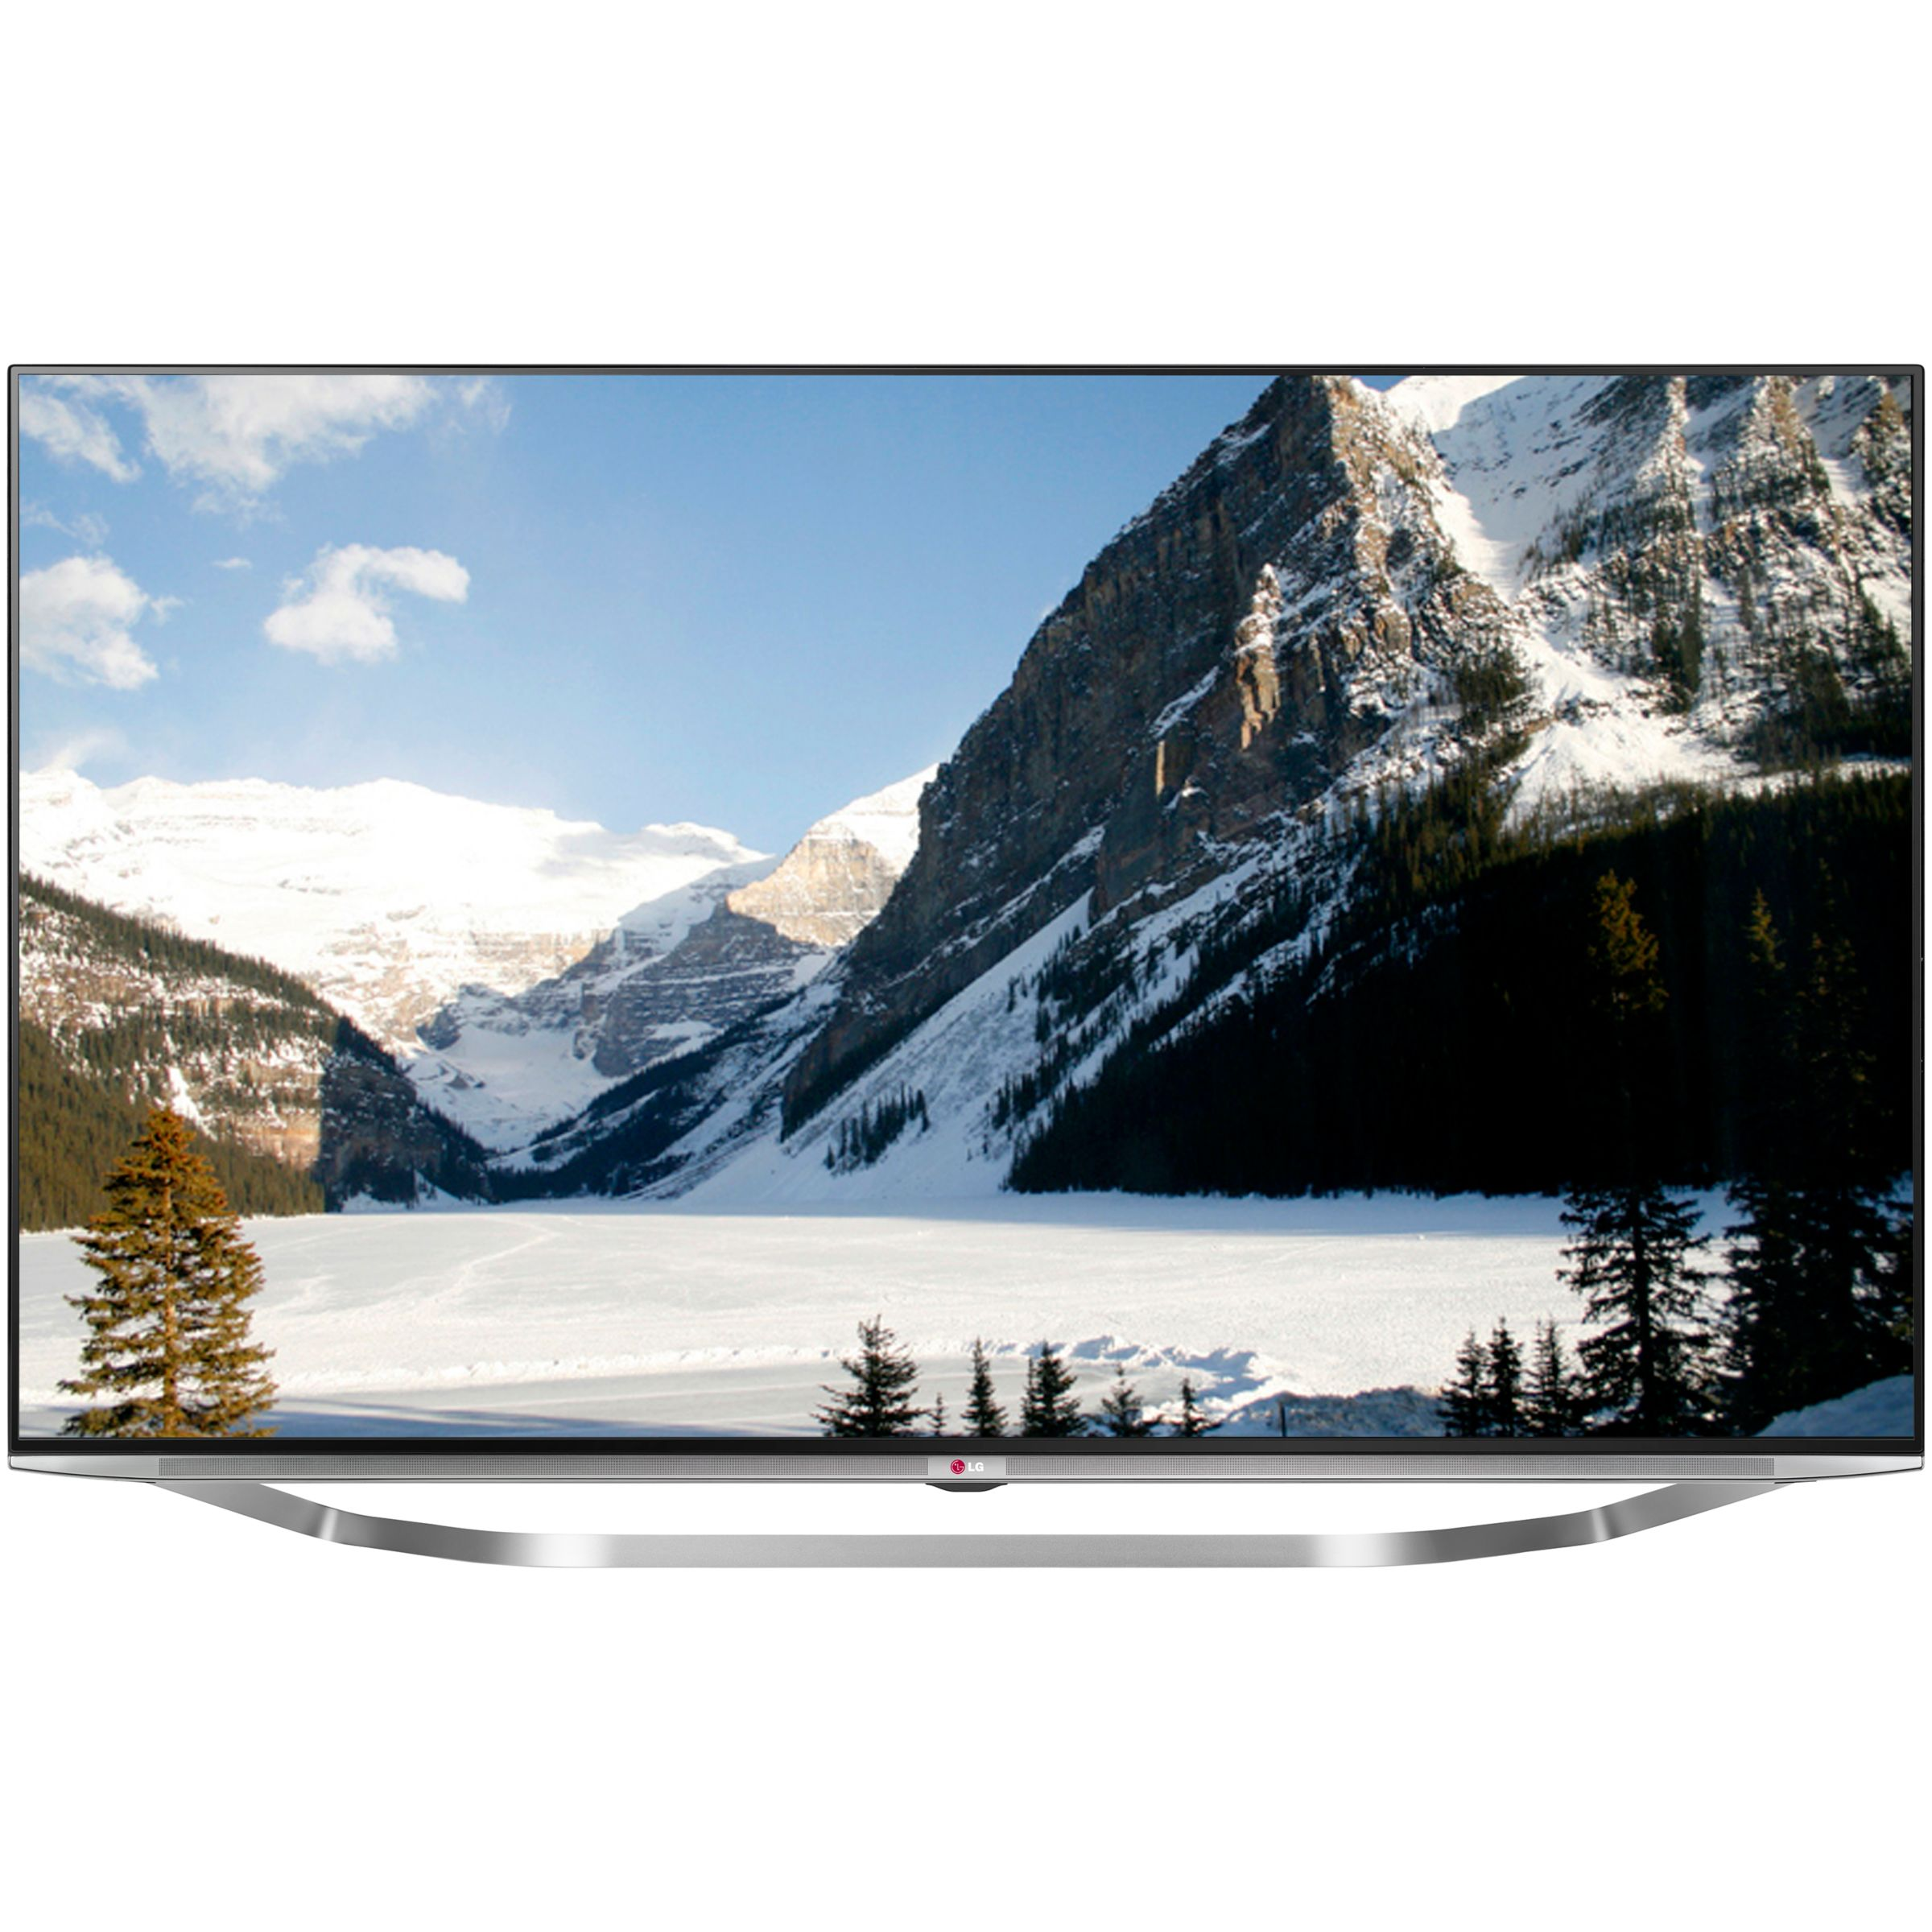 LG 55UB950V LED 4K Ultra HD 3D Smart TV 55 with Freeview HD Integrated Subwoofer